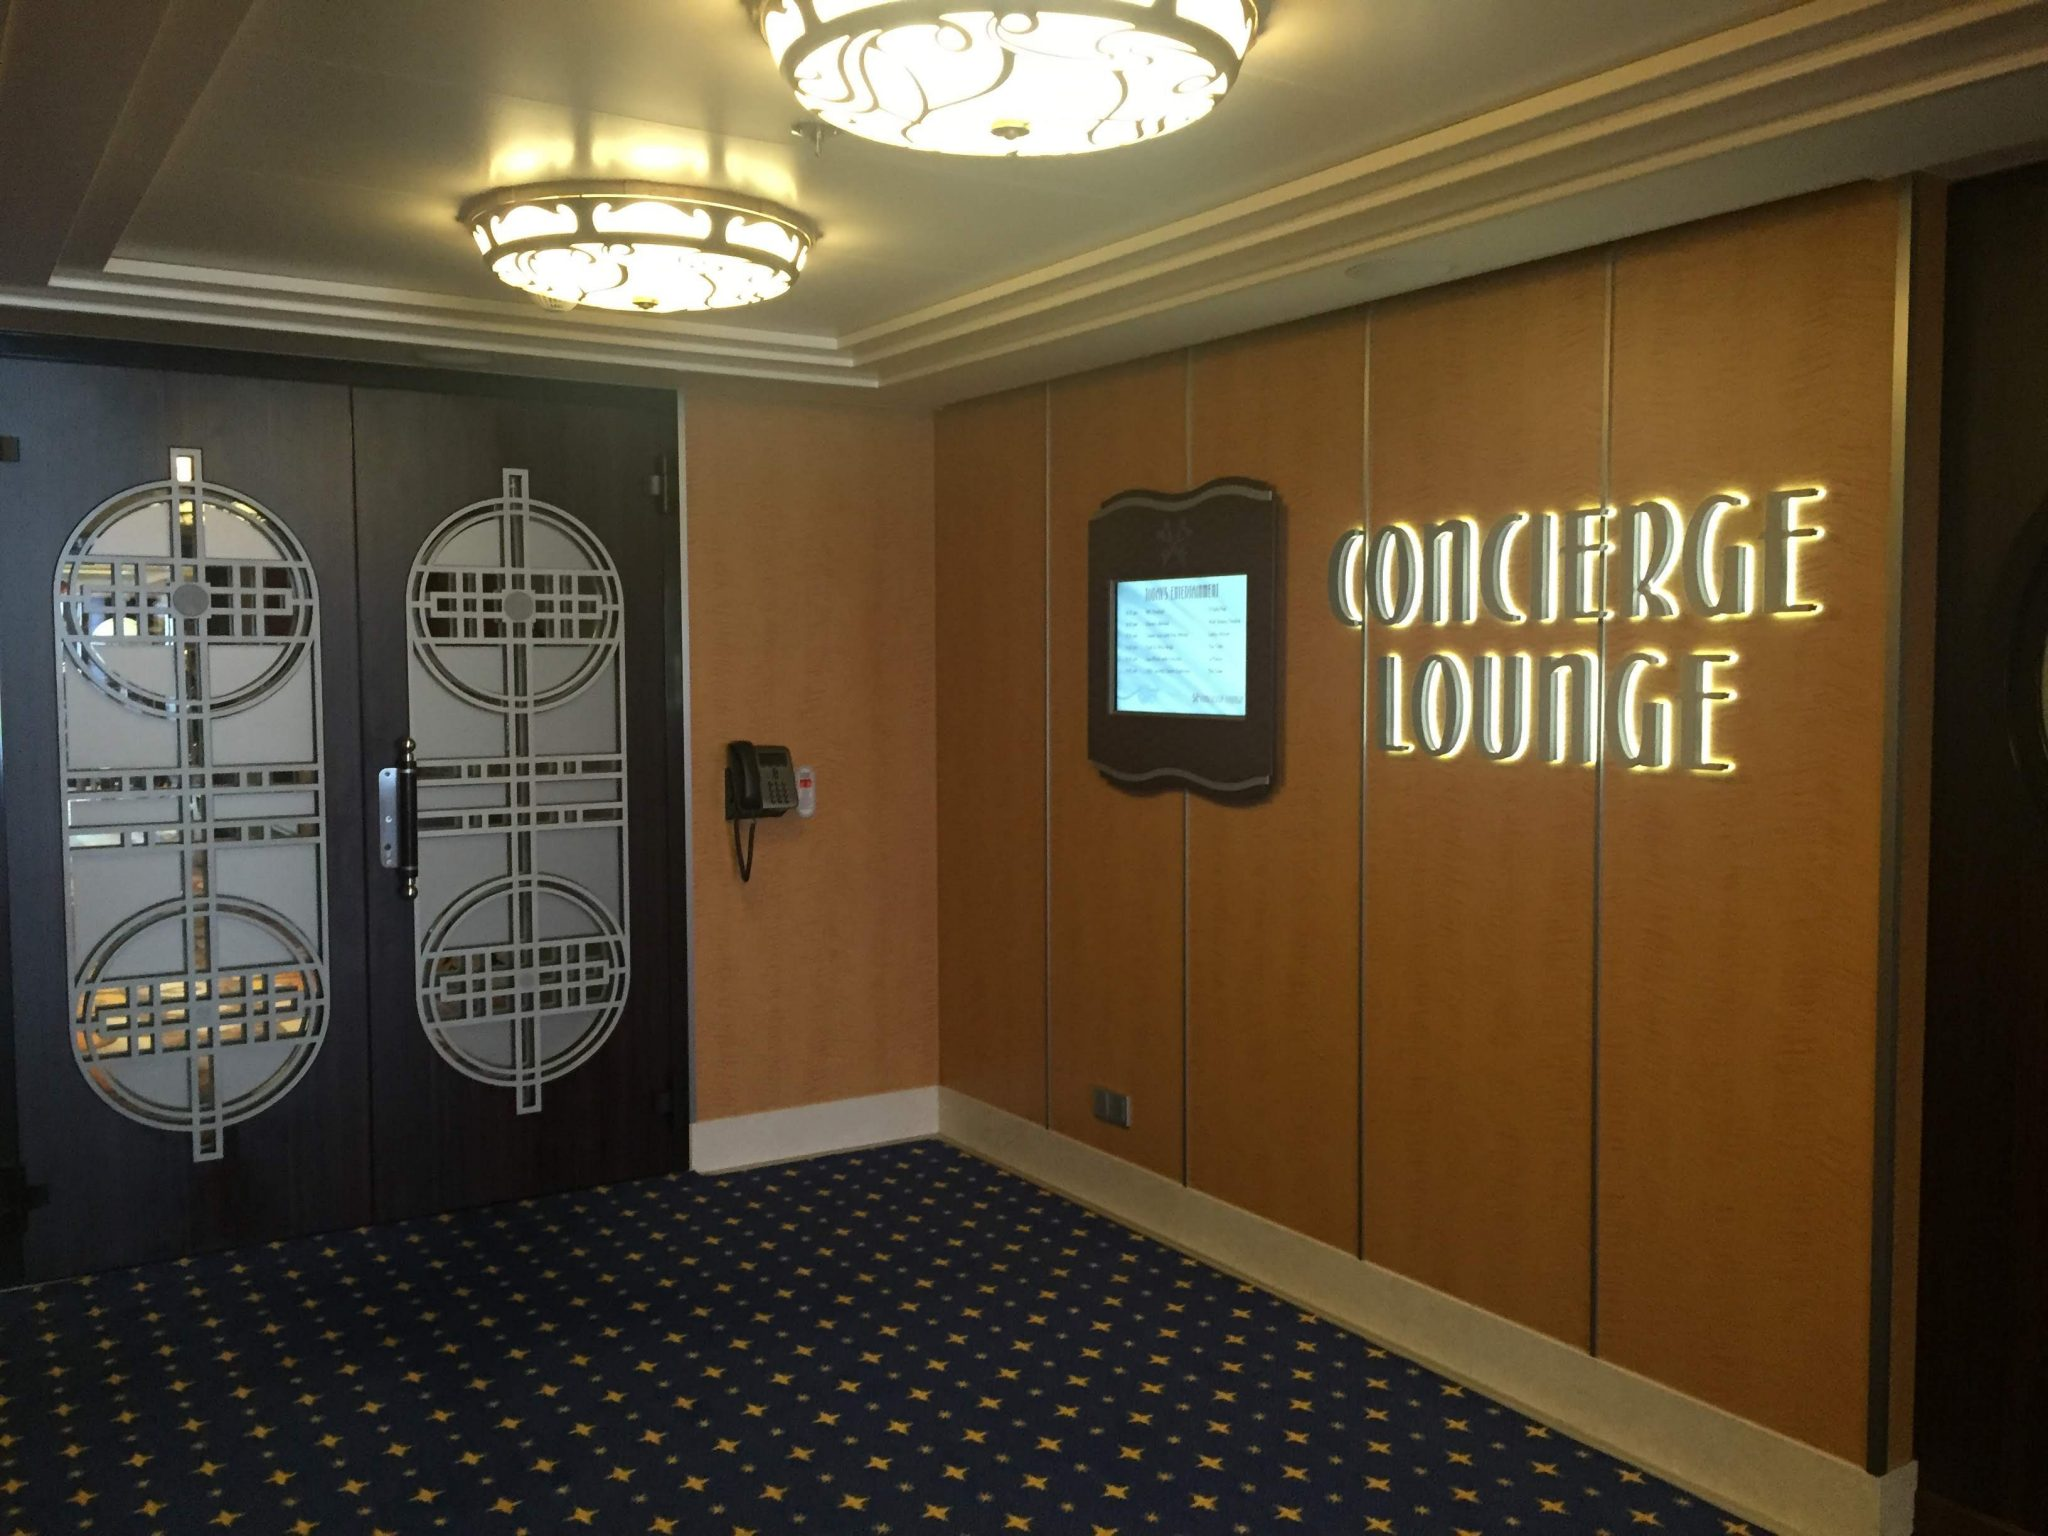 DIsney Cruise Concierge Lounge